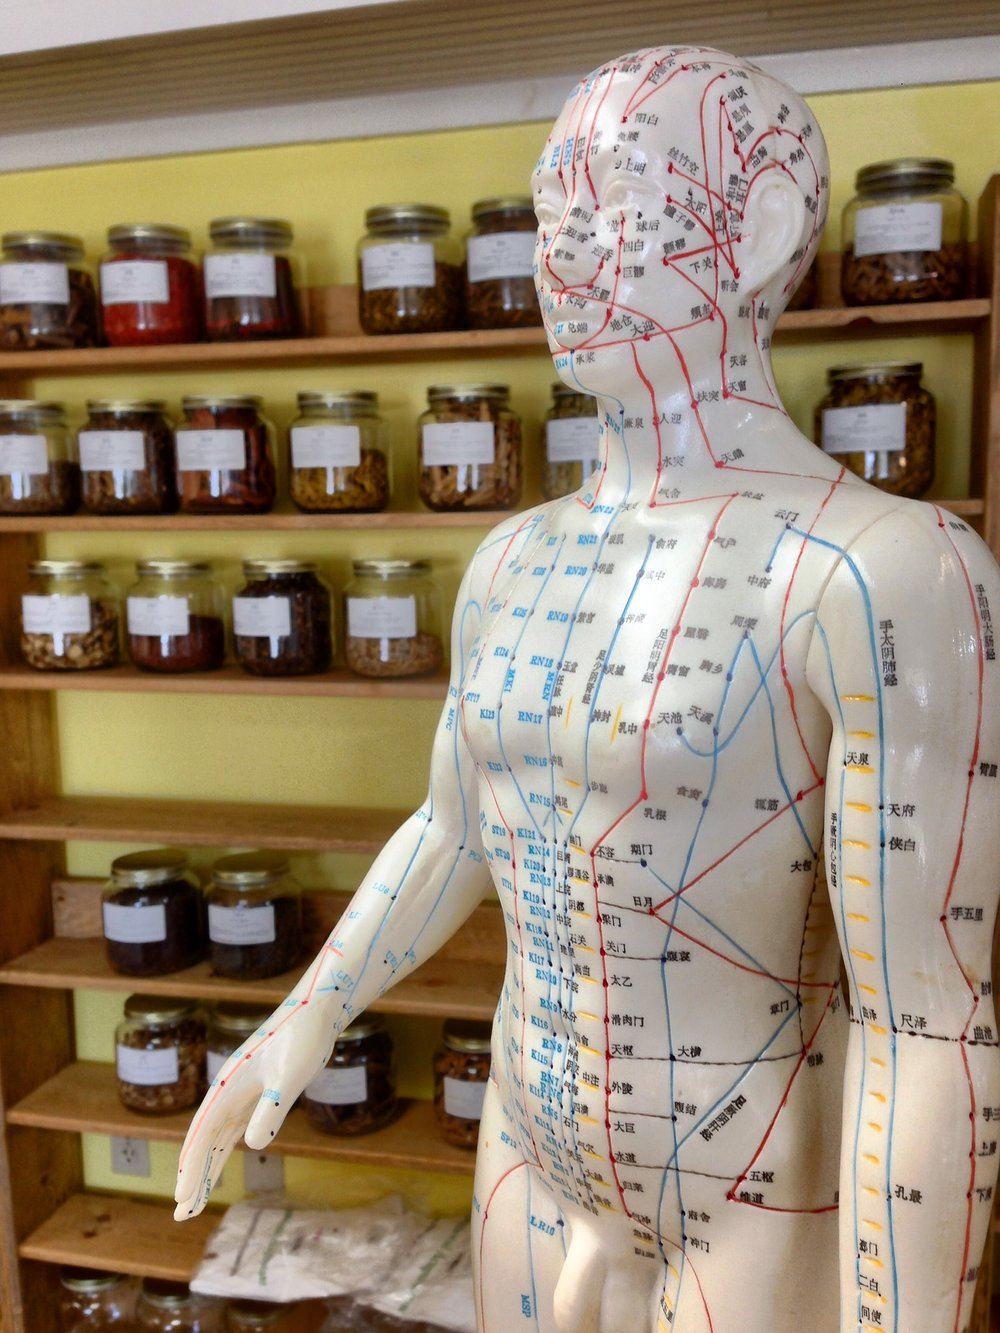 A human model showing the pathways of Acupuncture meridians